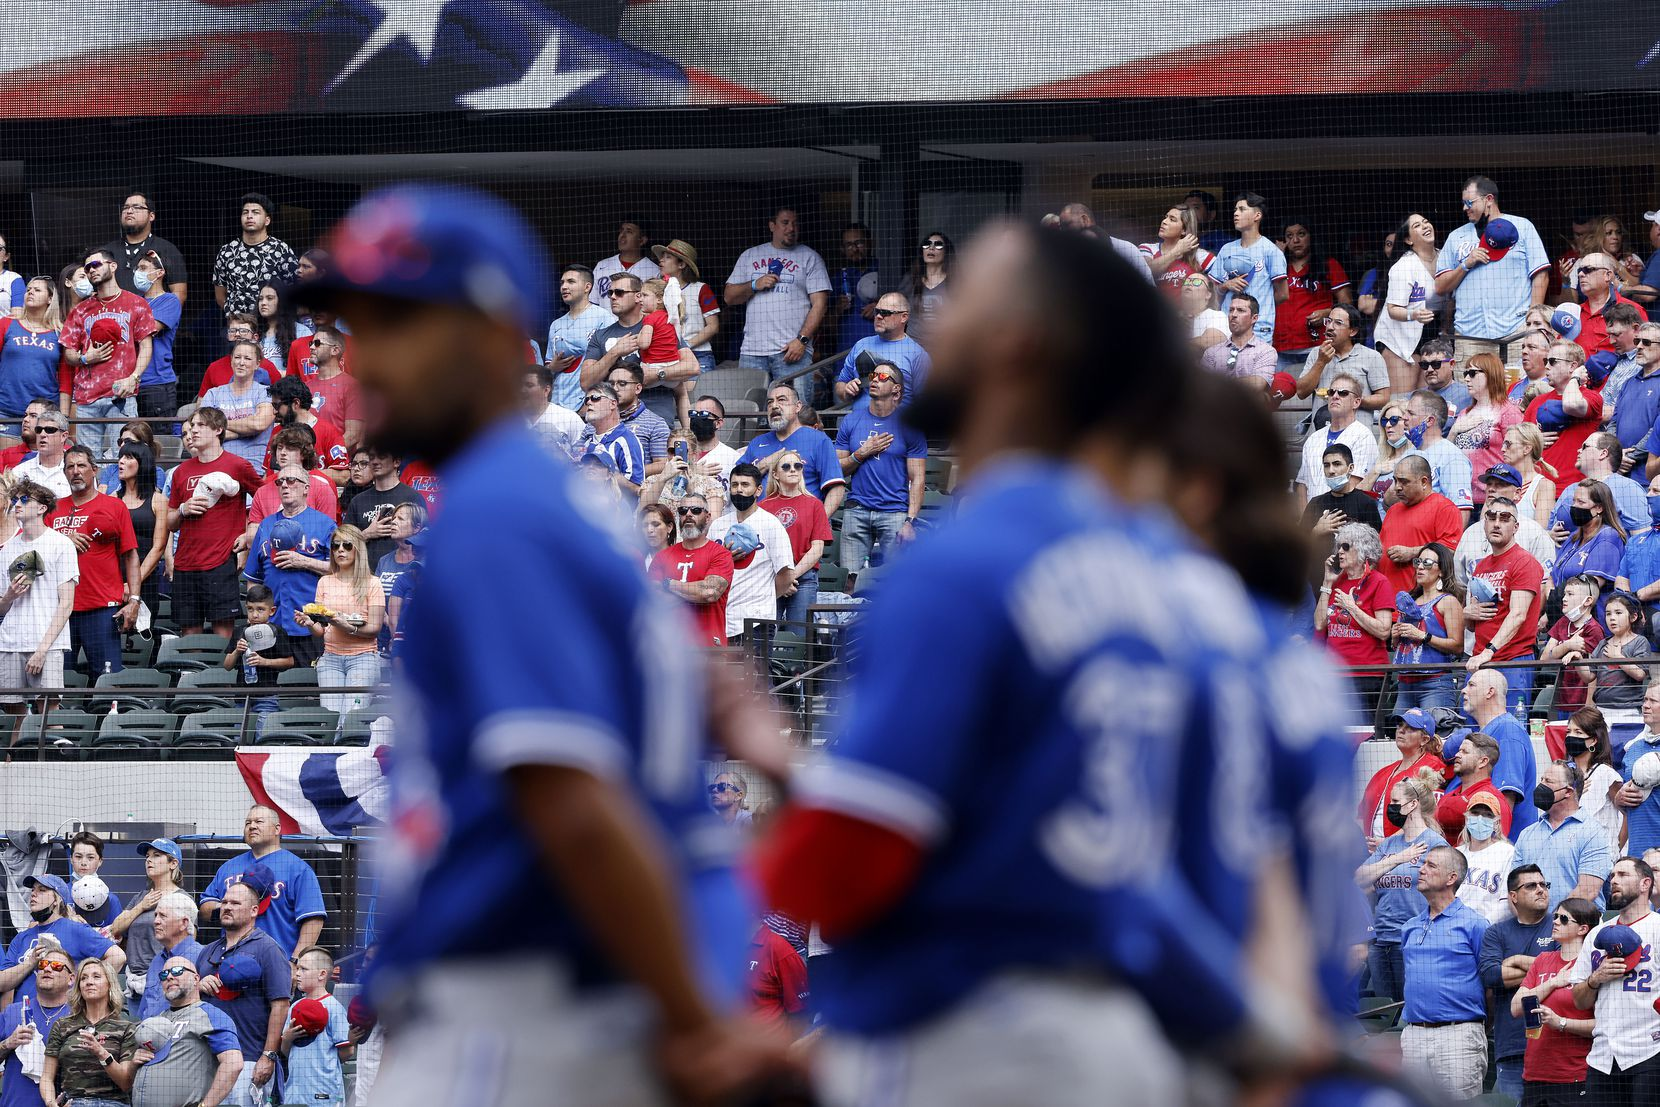 Texas Rangers fans stand and sing God Bless America in the eighth inning as the Toronto Blue Jays players watch at Globe Life Field in Arlington, Monday, April 5, 2021. The Texas Rangers were facing the Toronto Blue Jays in their home opener. (Tom Fox/The Dallas Morning News)